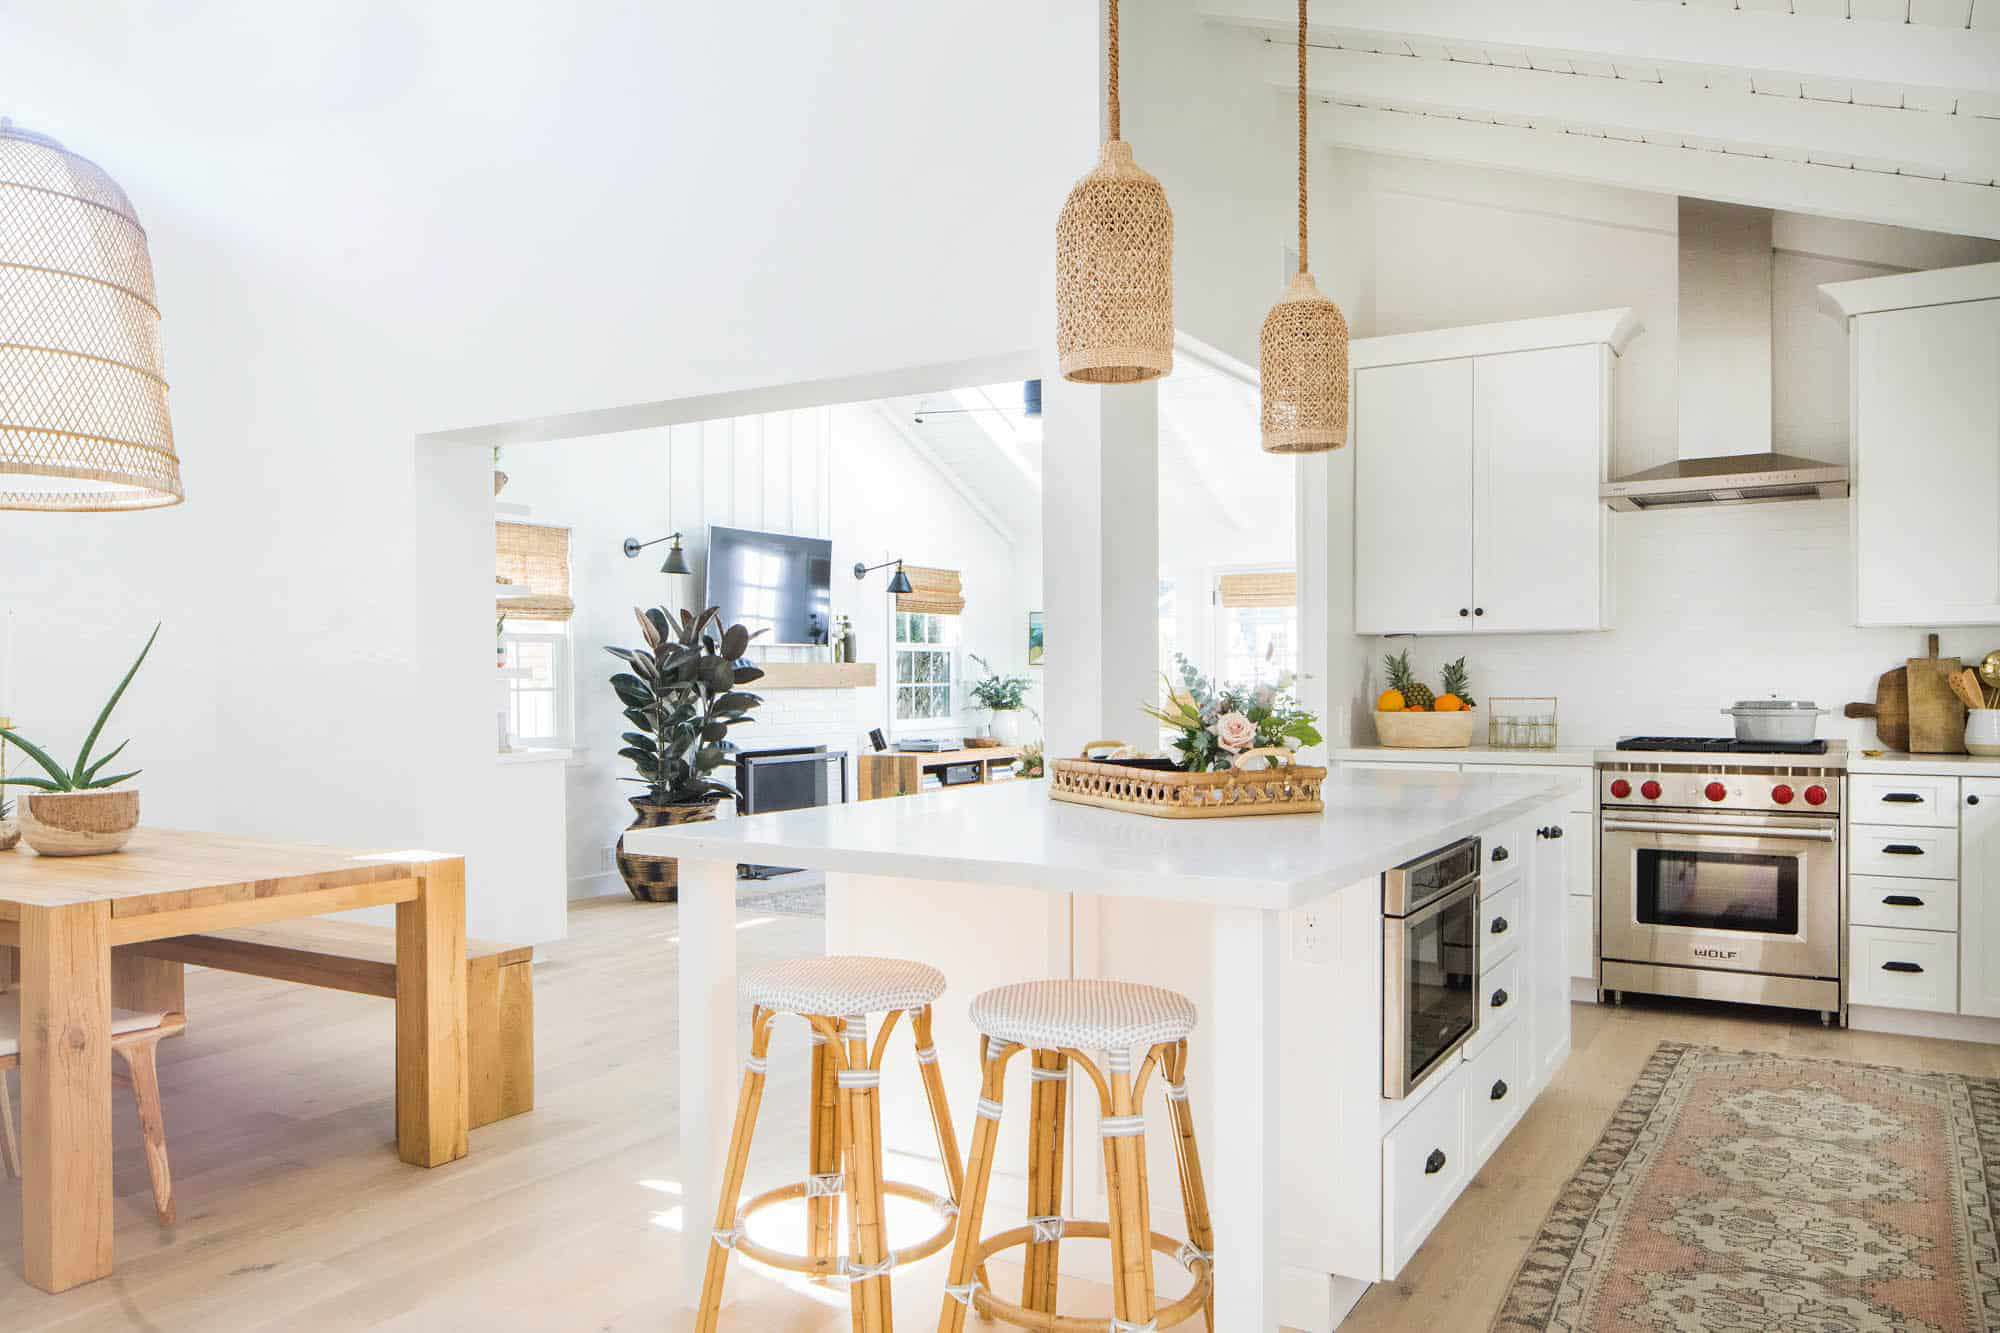 An open-concept kitchen with white and pink details